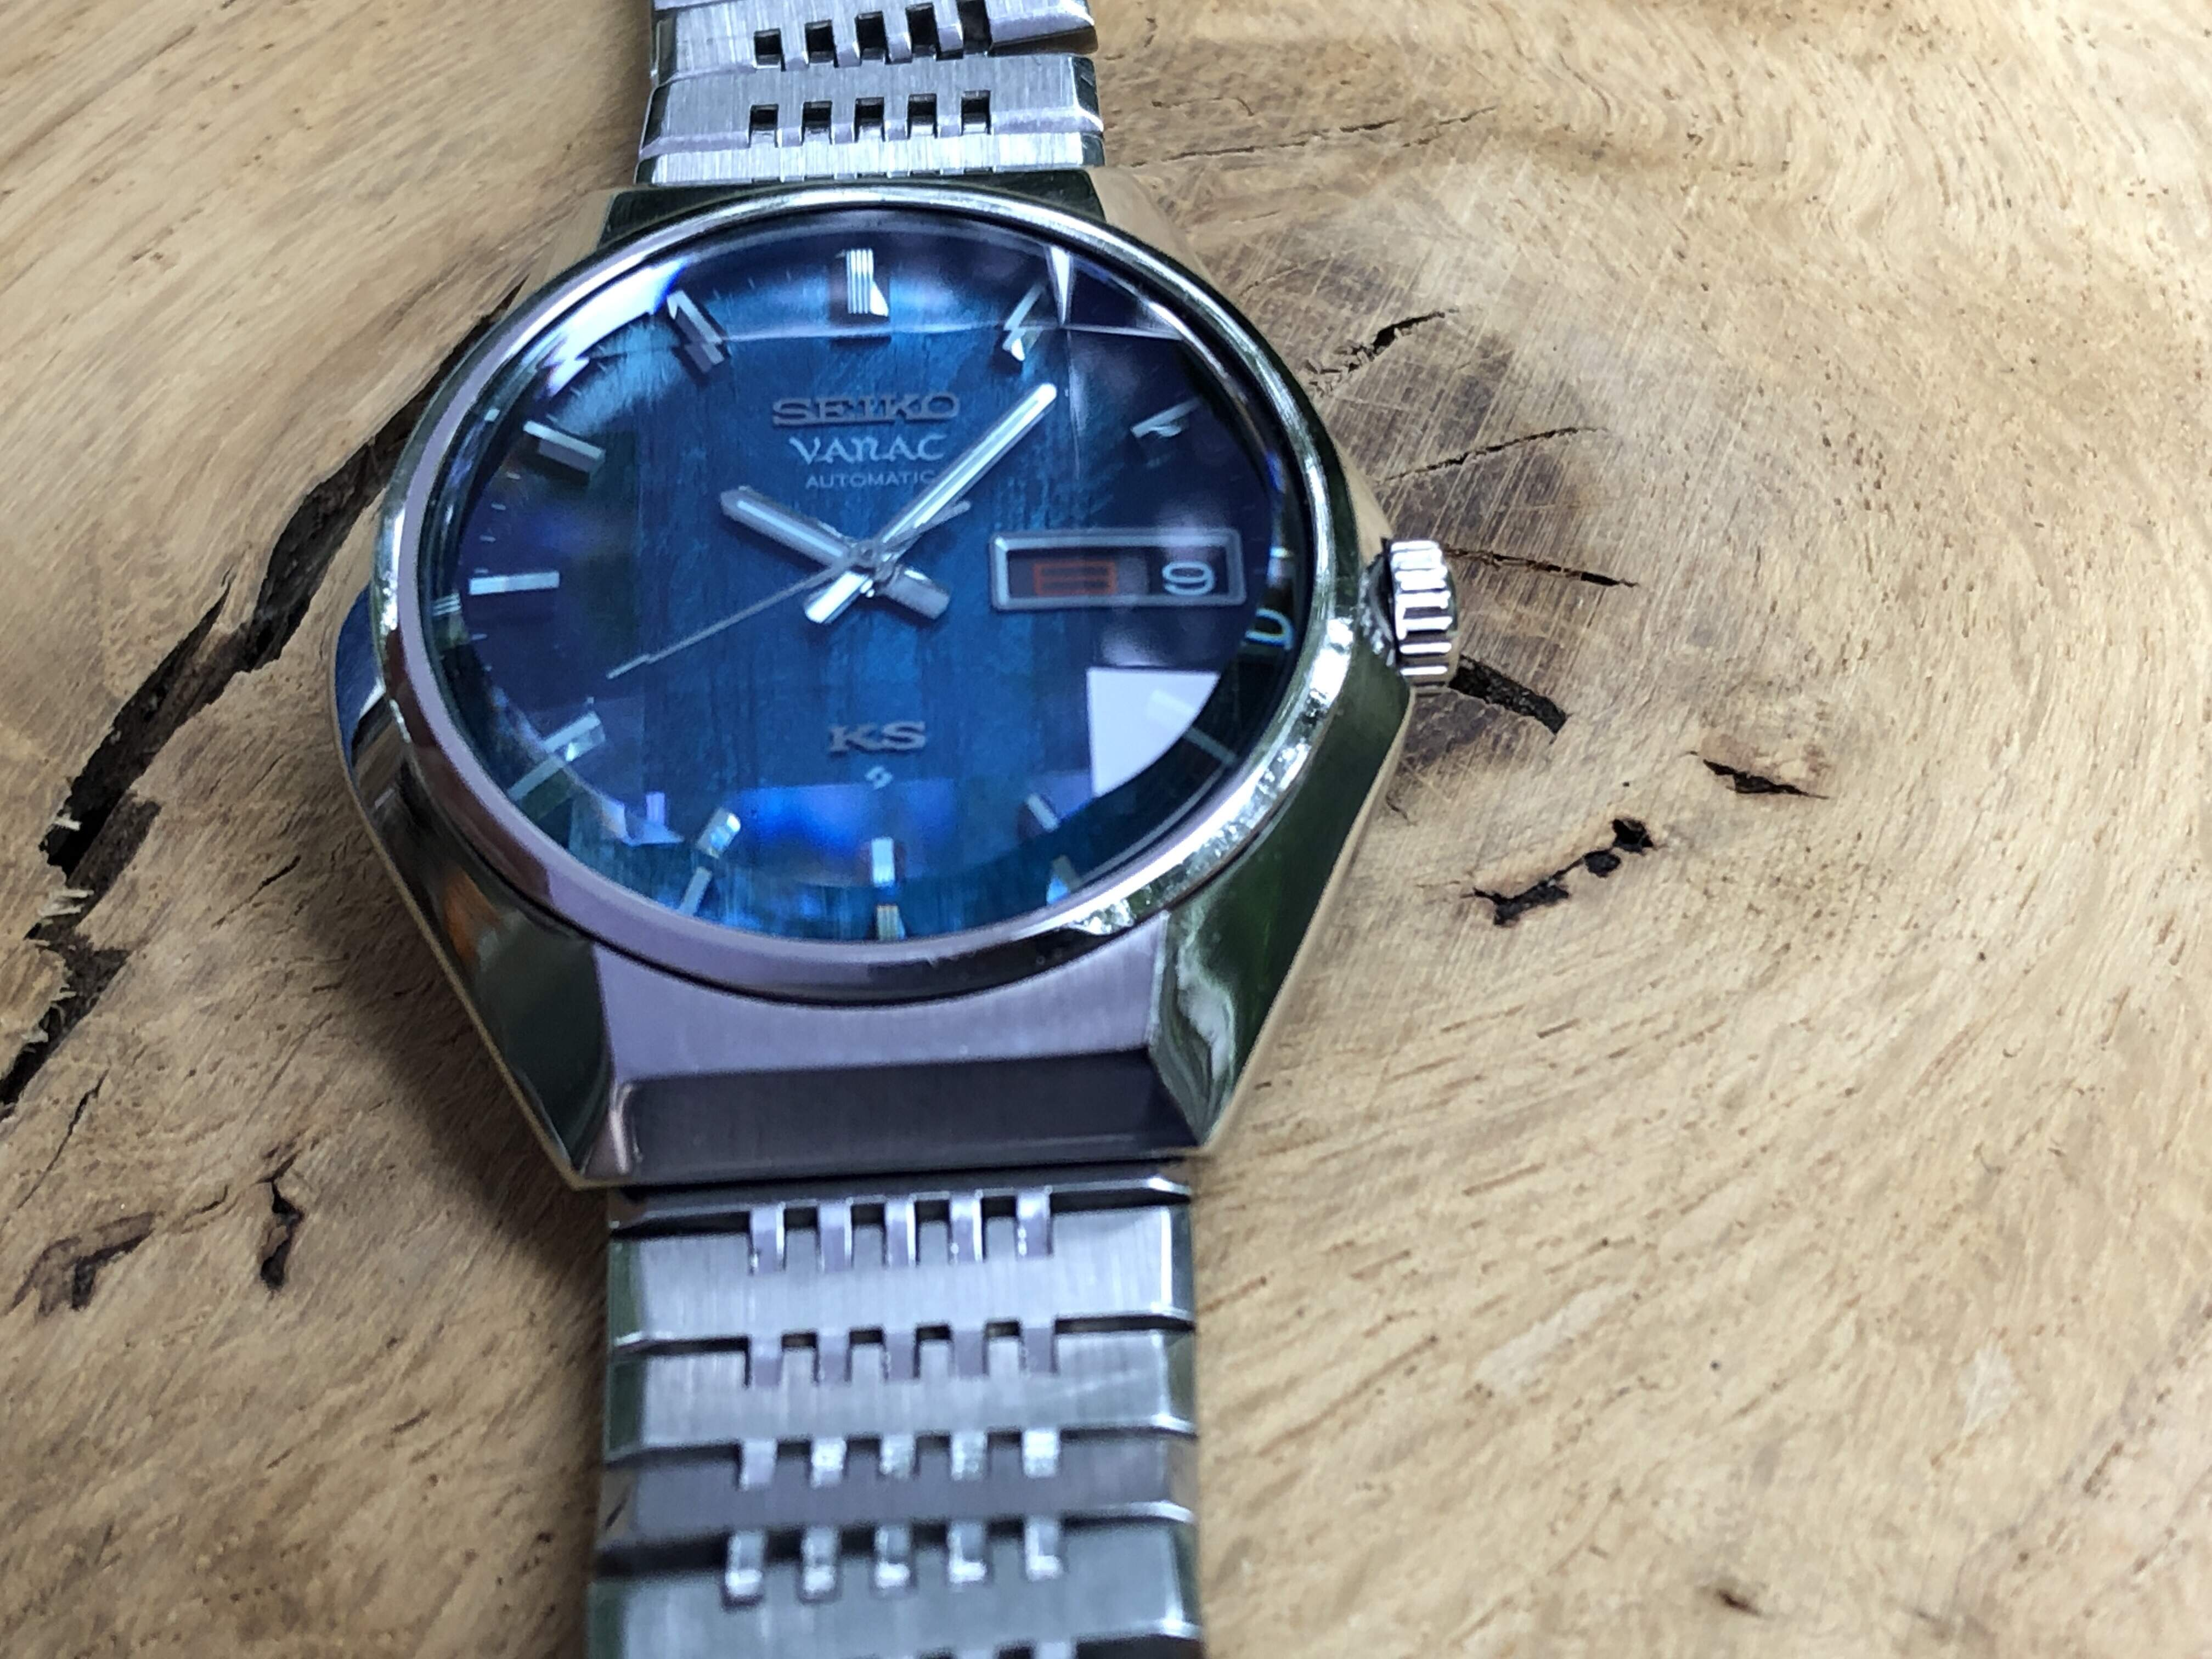 King Seiko Vanac 5626-723A VAK171 (Sold)